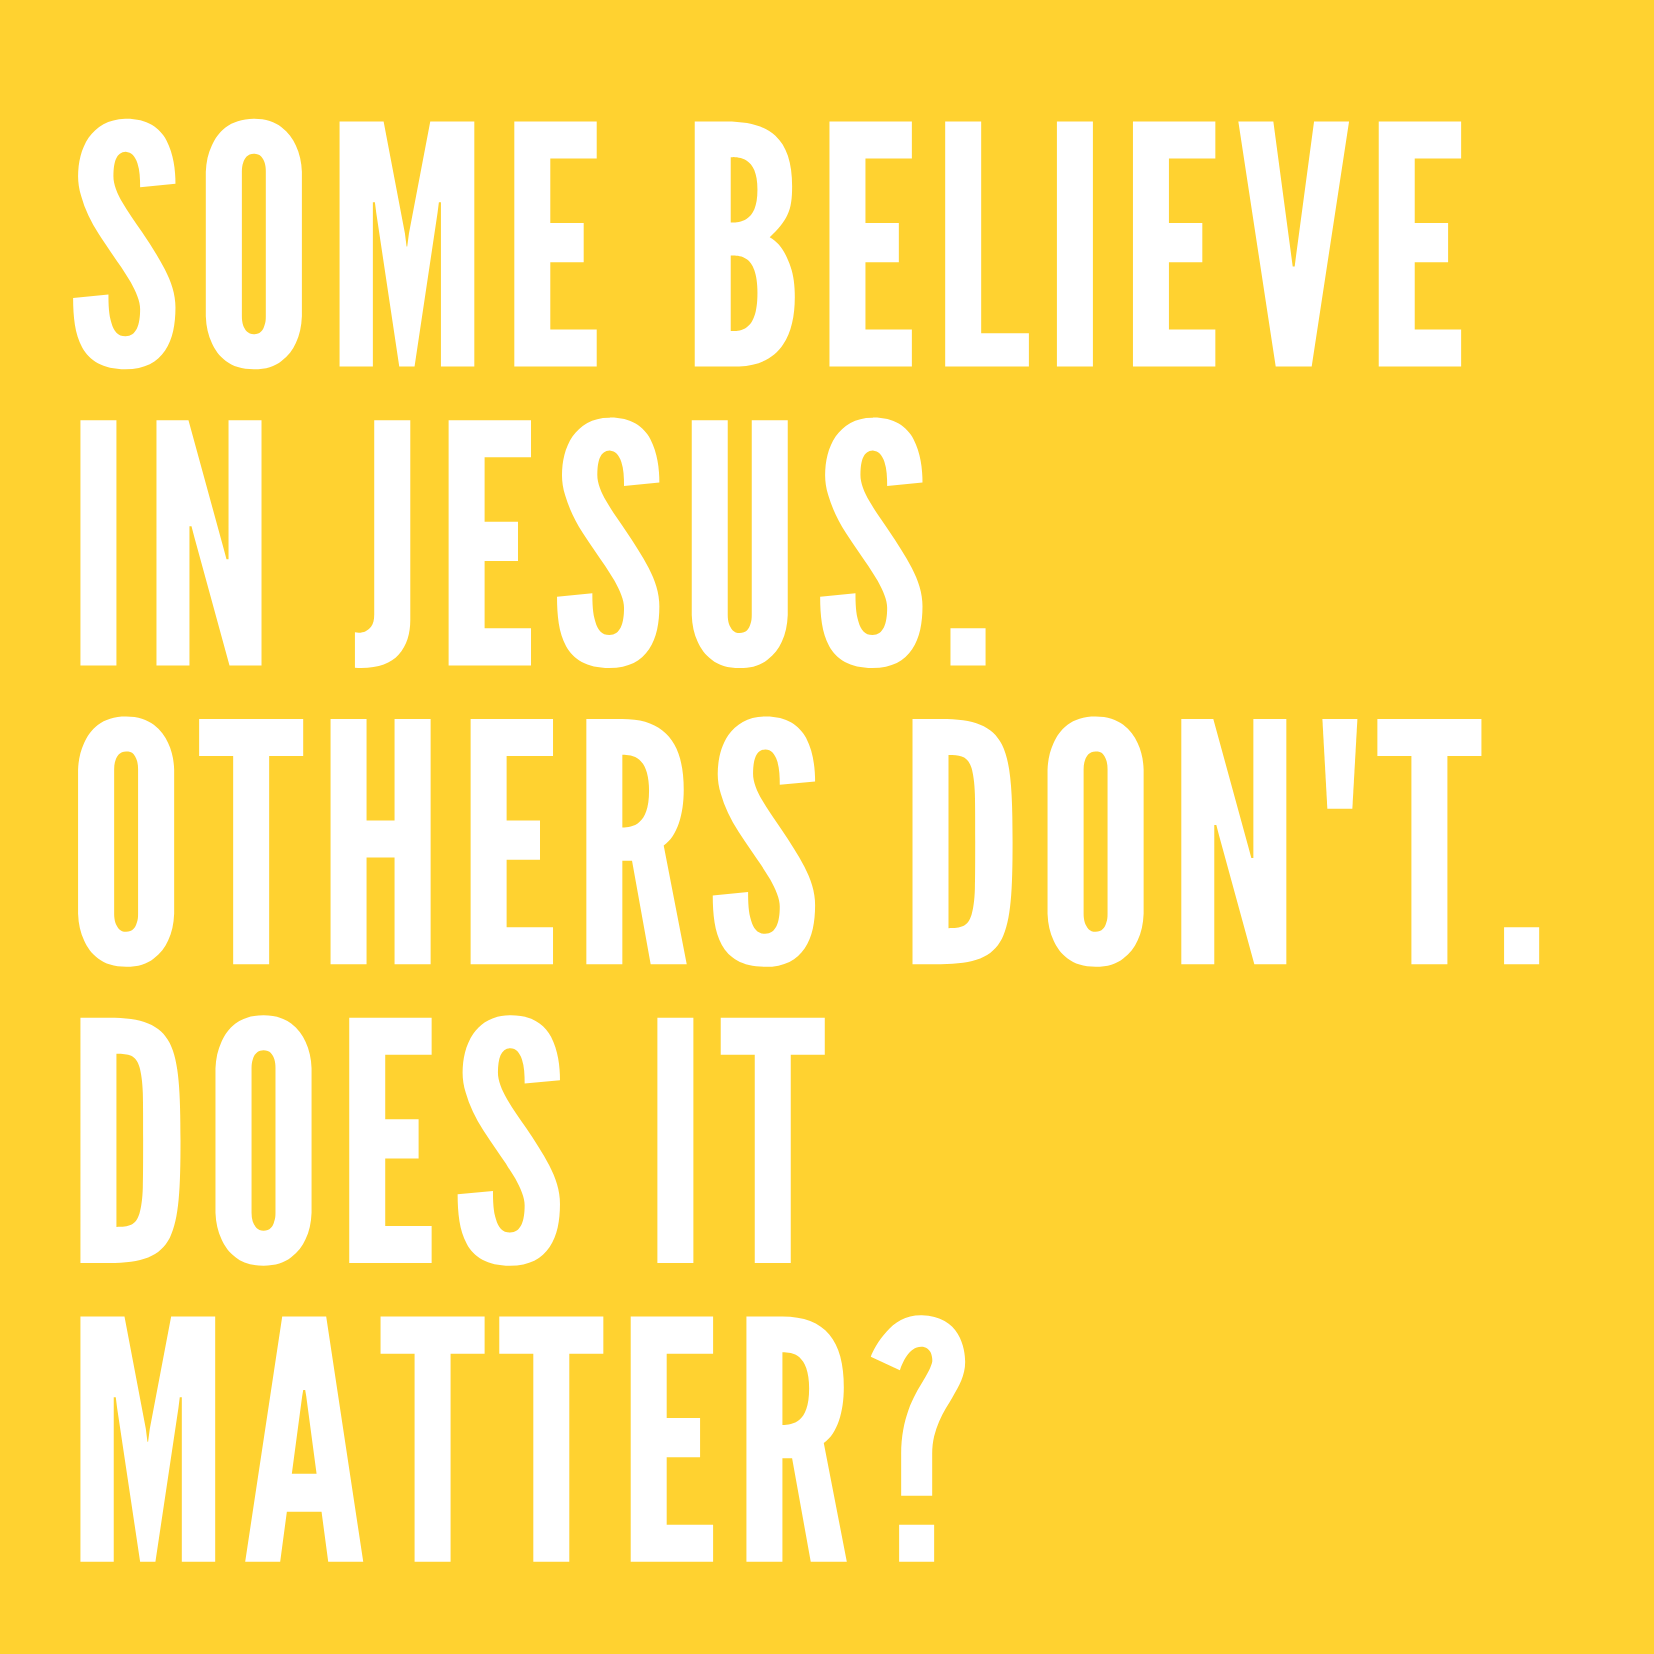 Some believe in Jesus. Others don't. Does it matter?